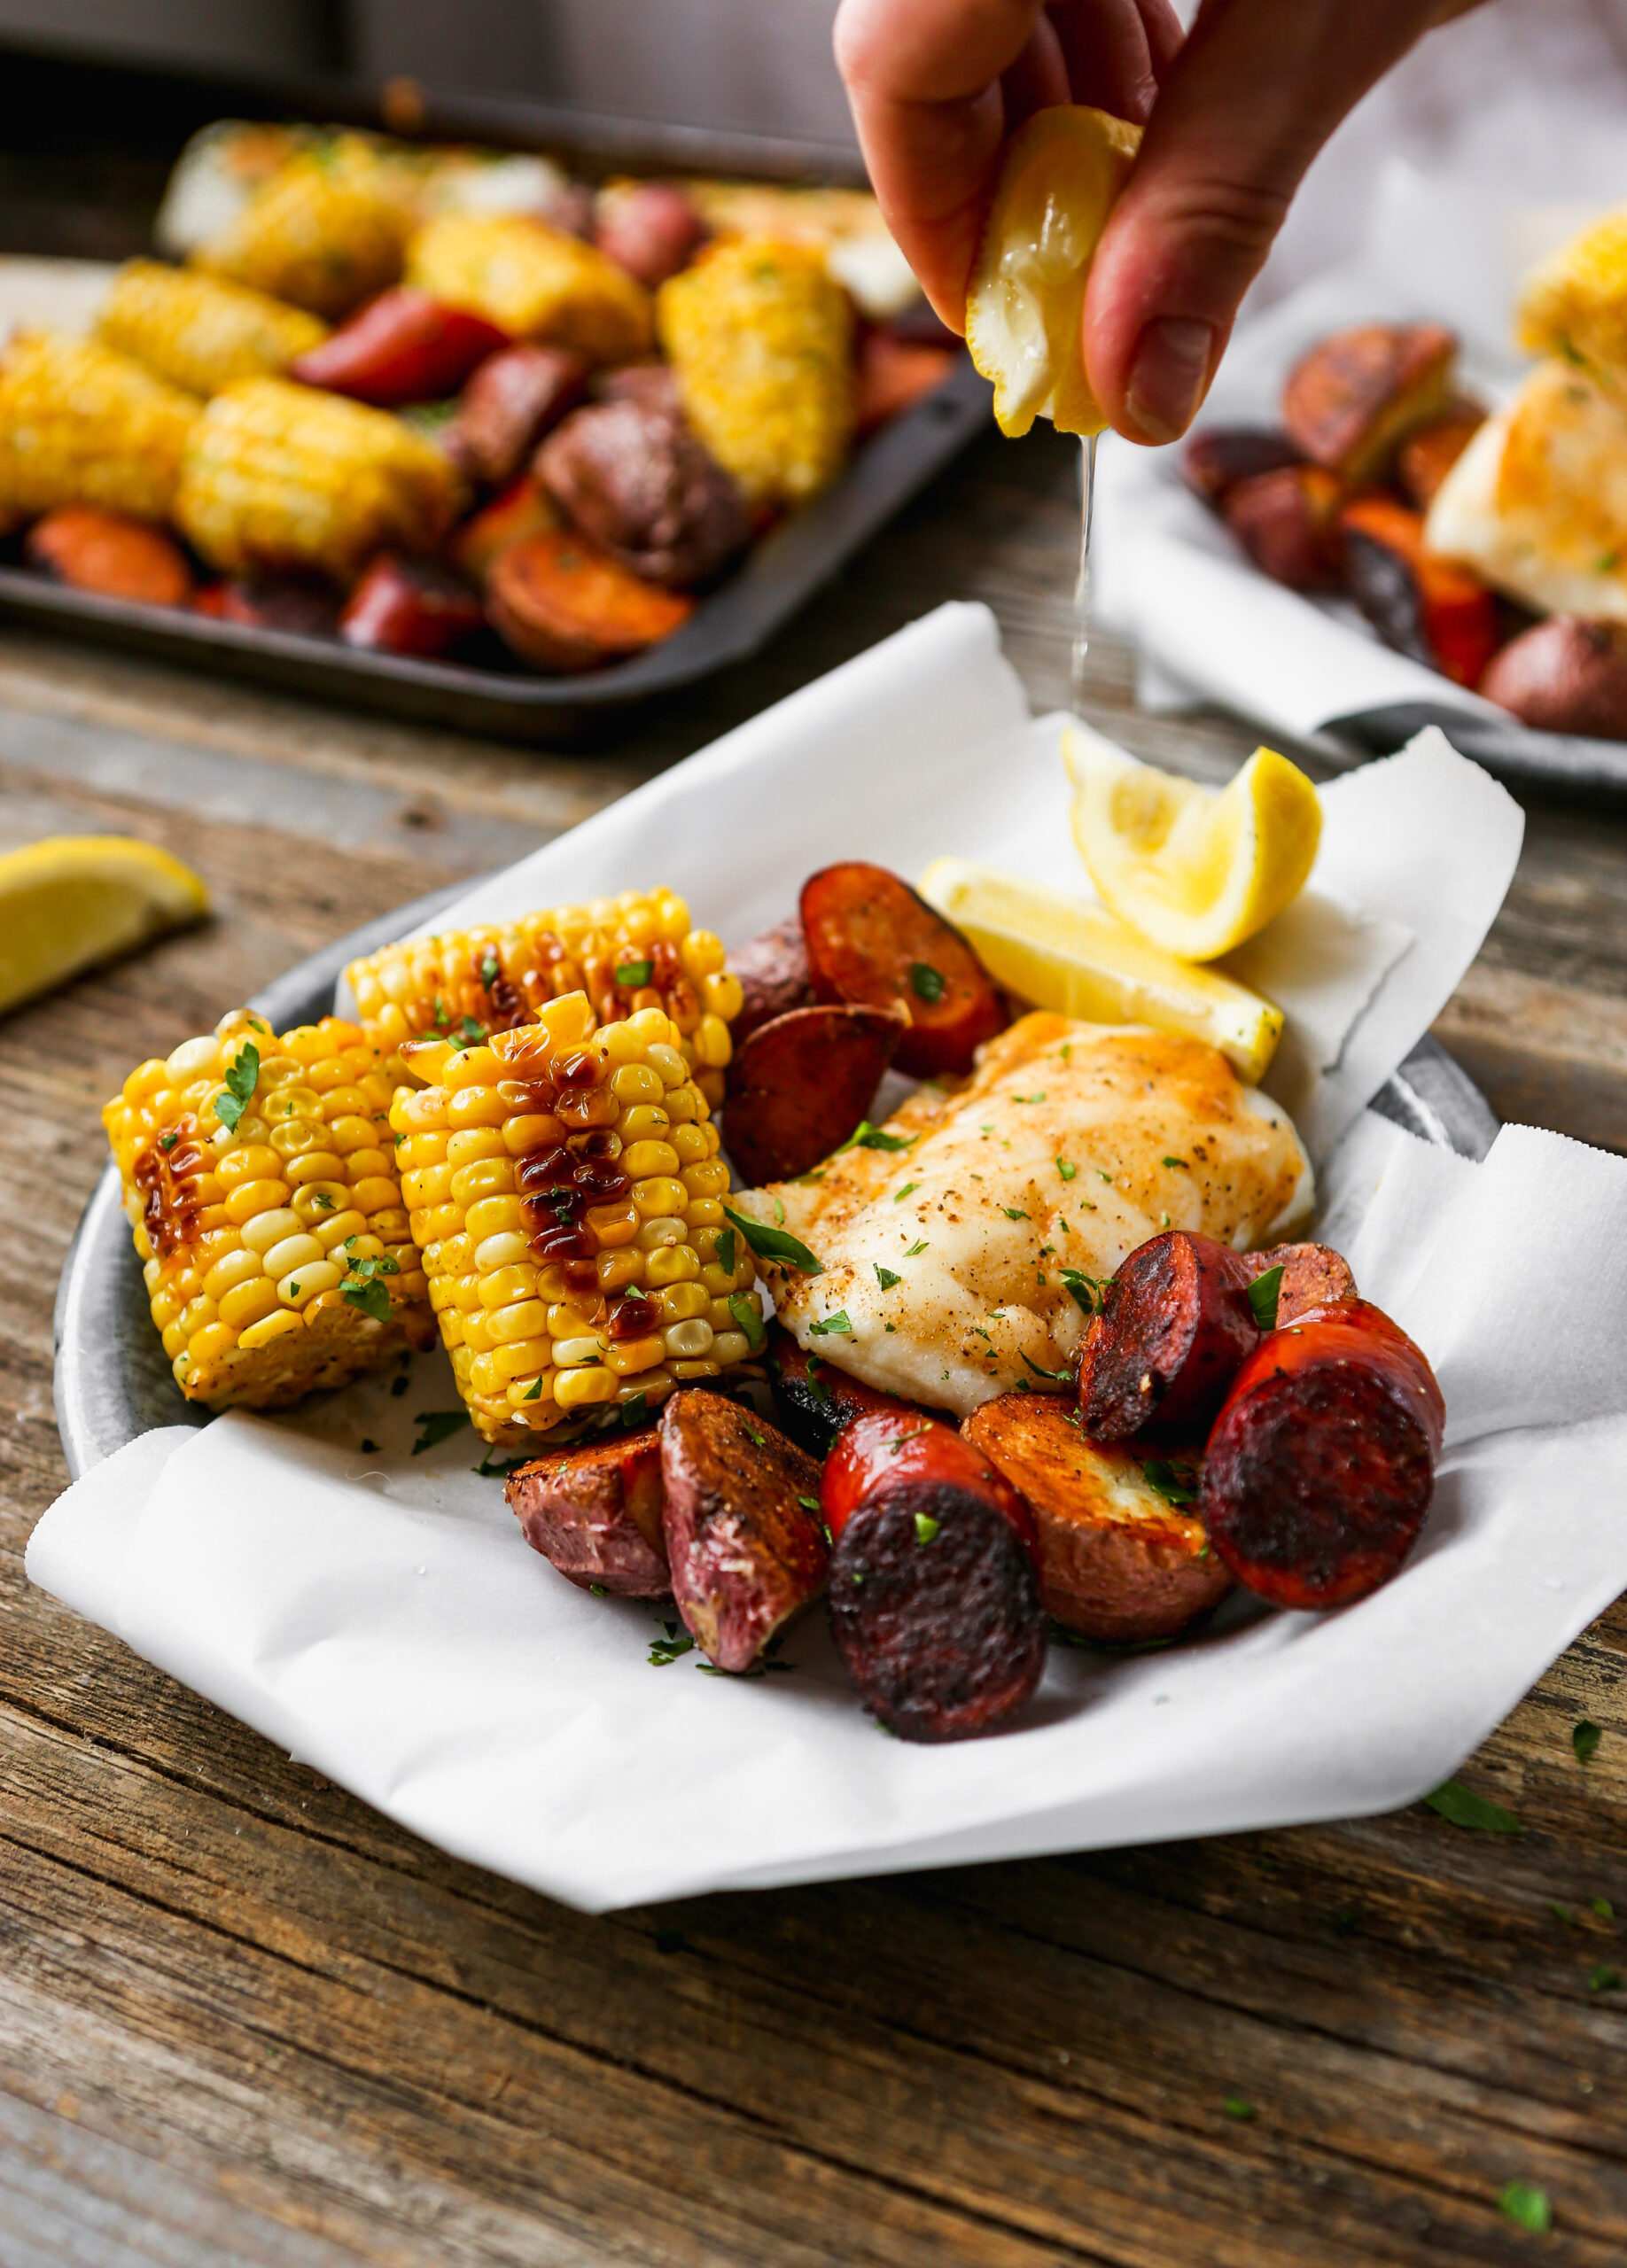 Lemon being squeezed over roasted fish, potatoes, sausage, and corn on paper-lined metal plates set on worn wood surface.